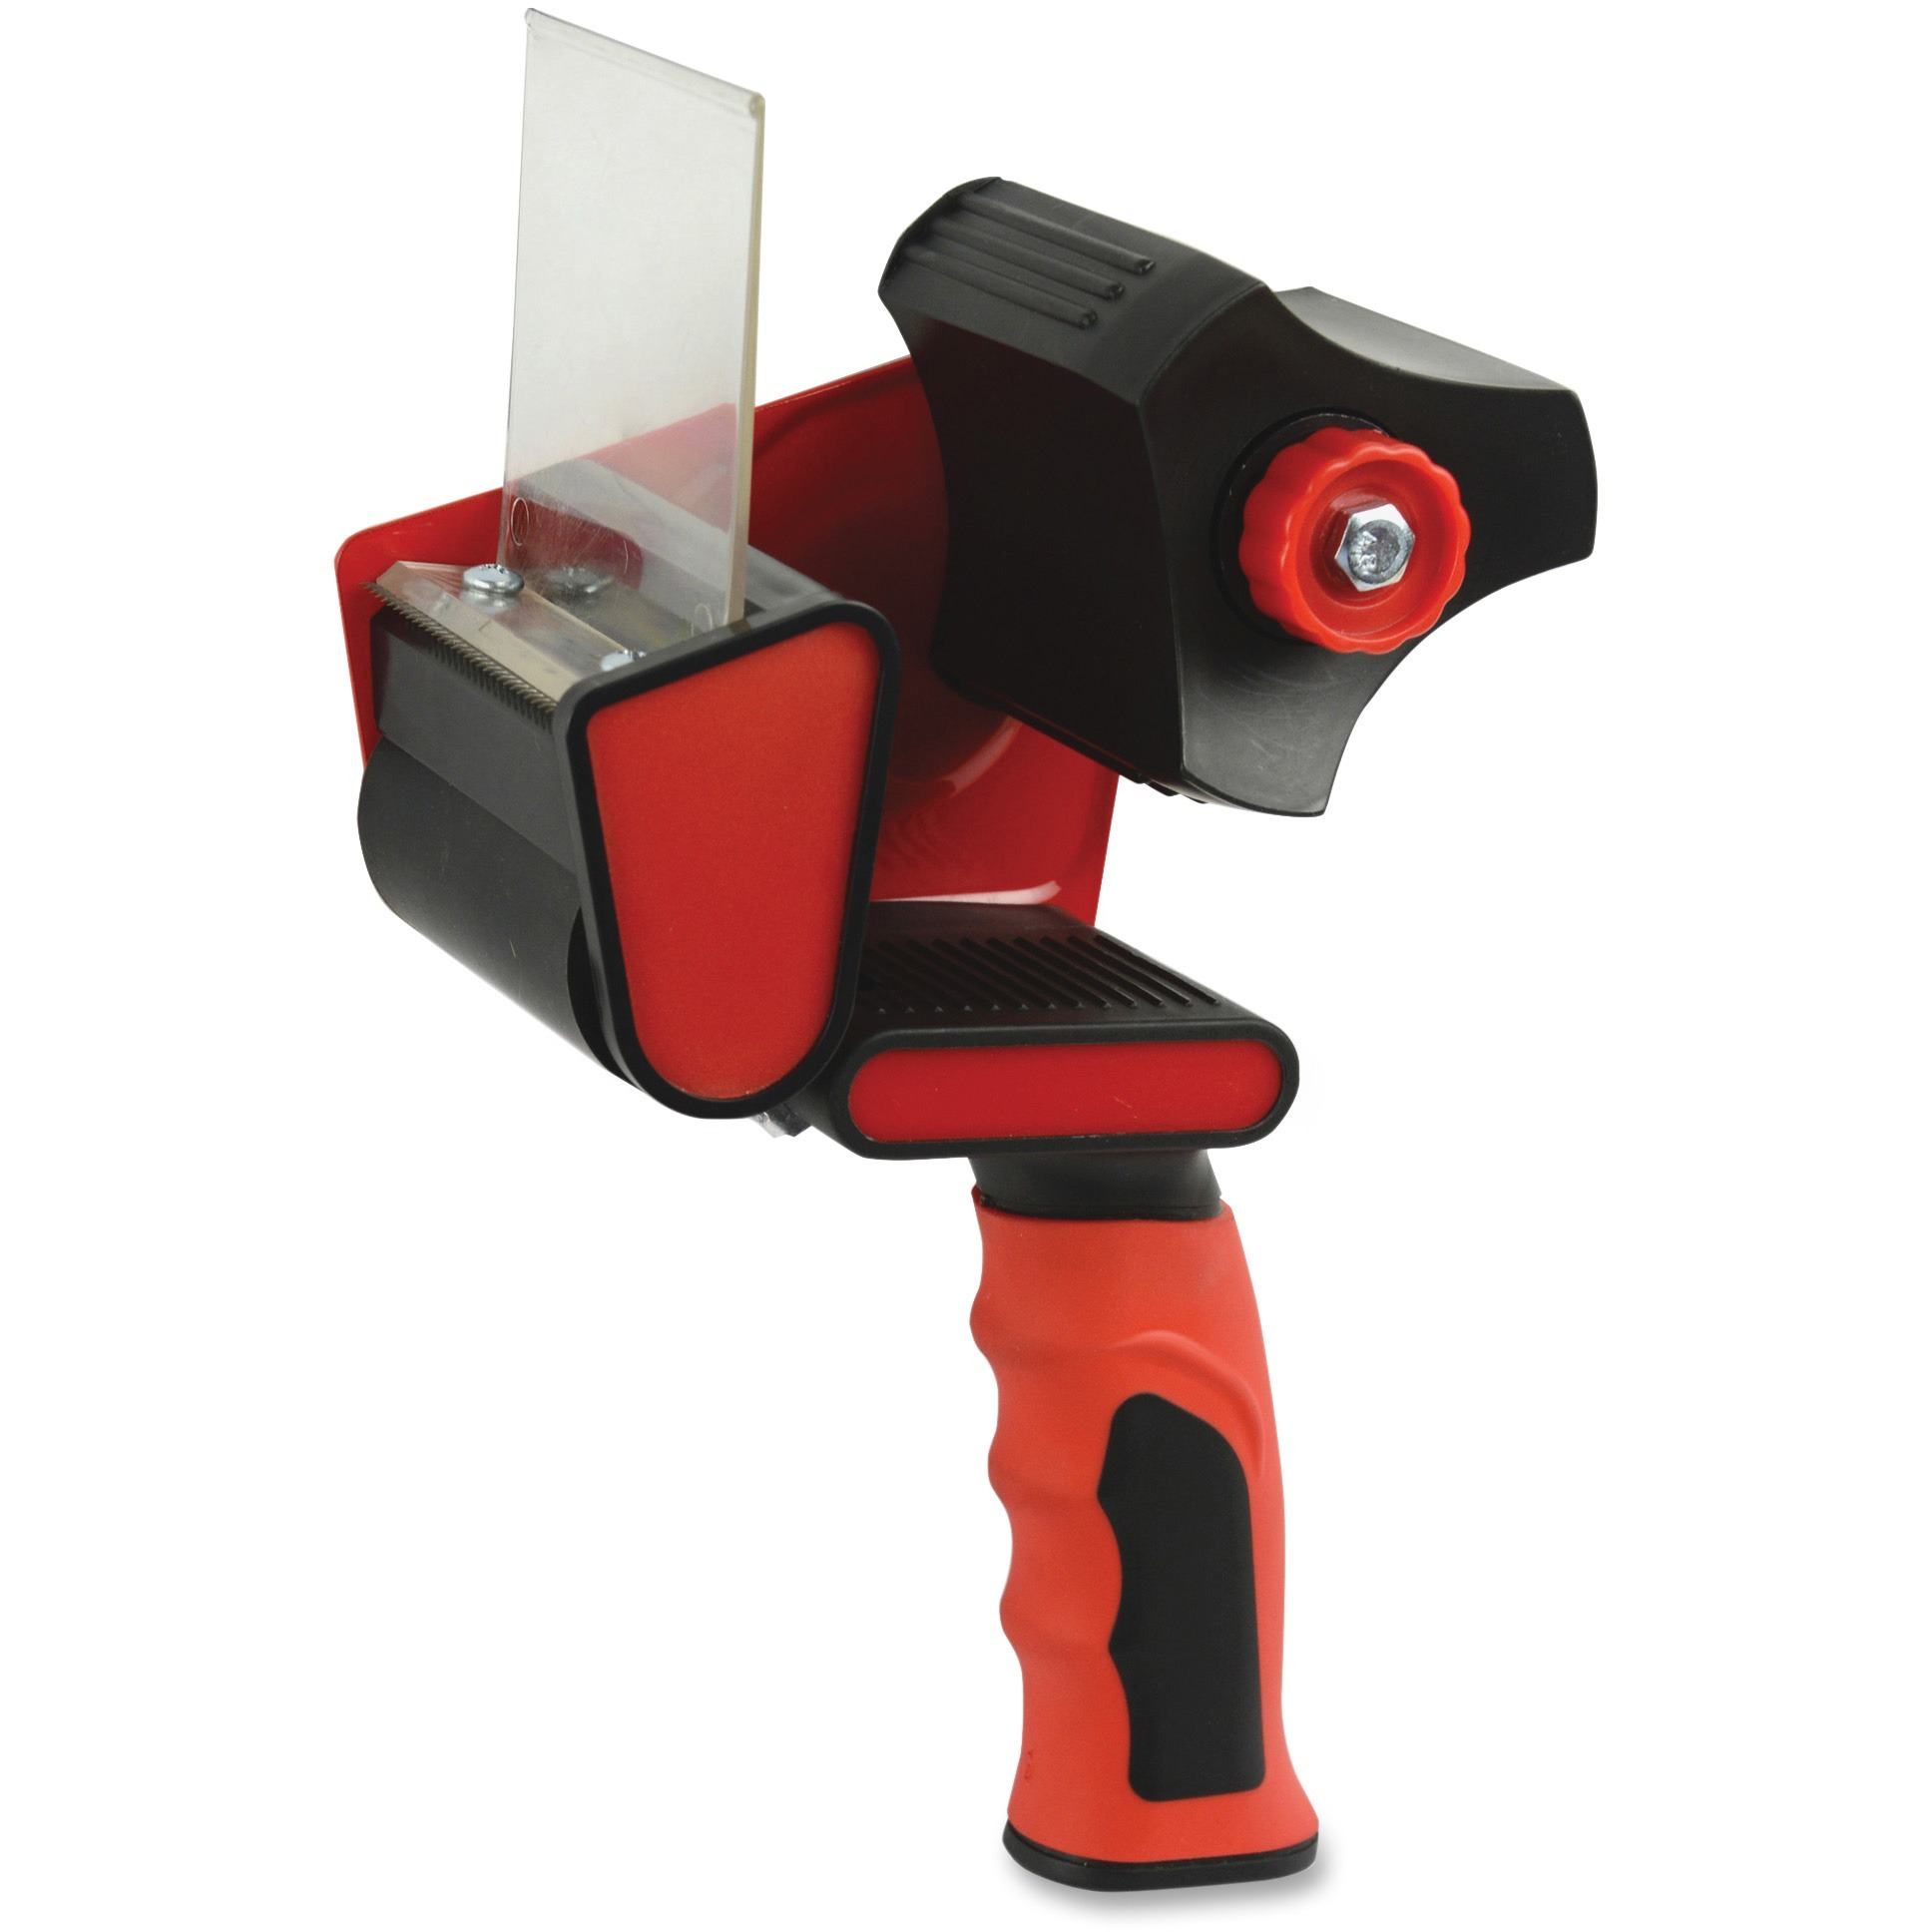 "Sparco, SPR68535, 3"" Packaging Tape Dispenser, 1 Each, Red,Black"